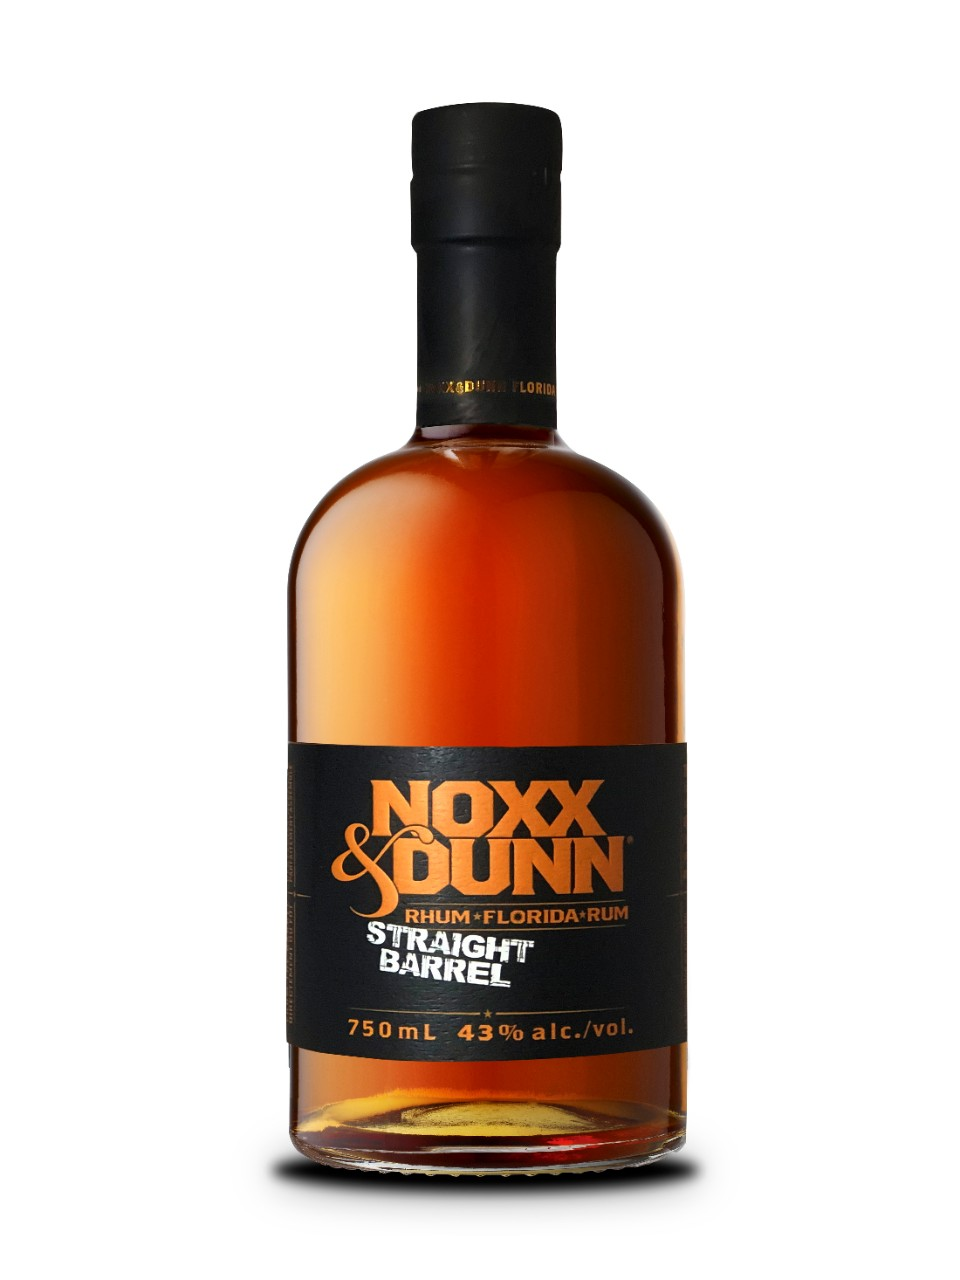 Noxx & Dunn Straight Barrel Florida Rum from LCBO